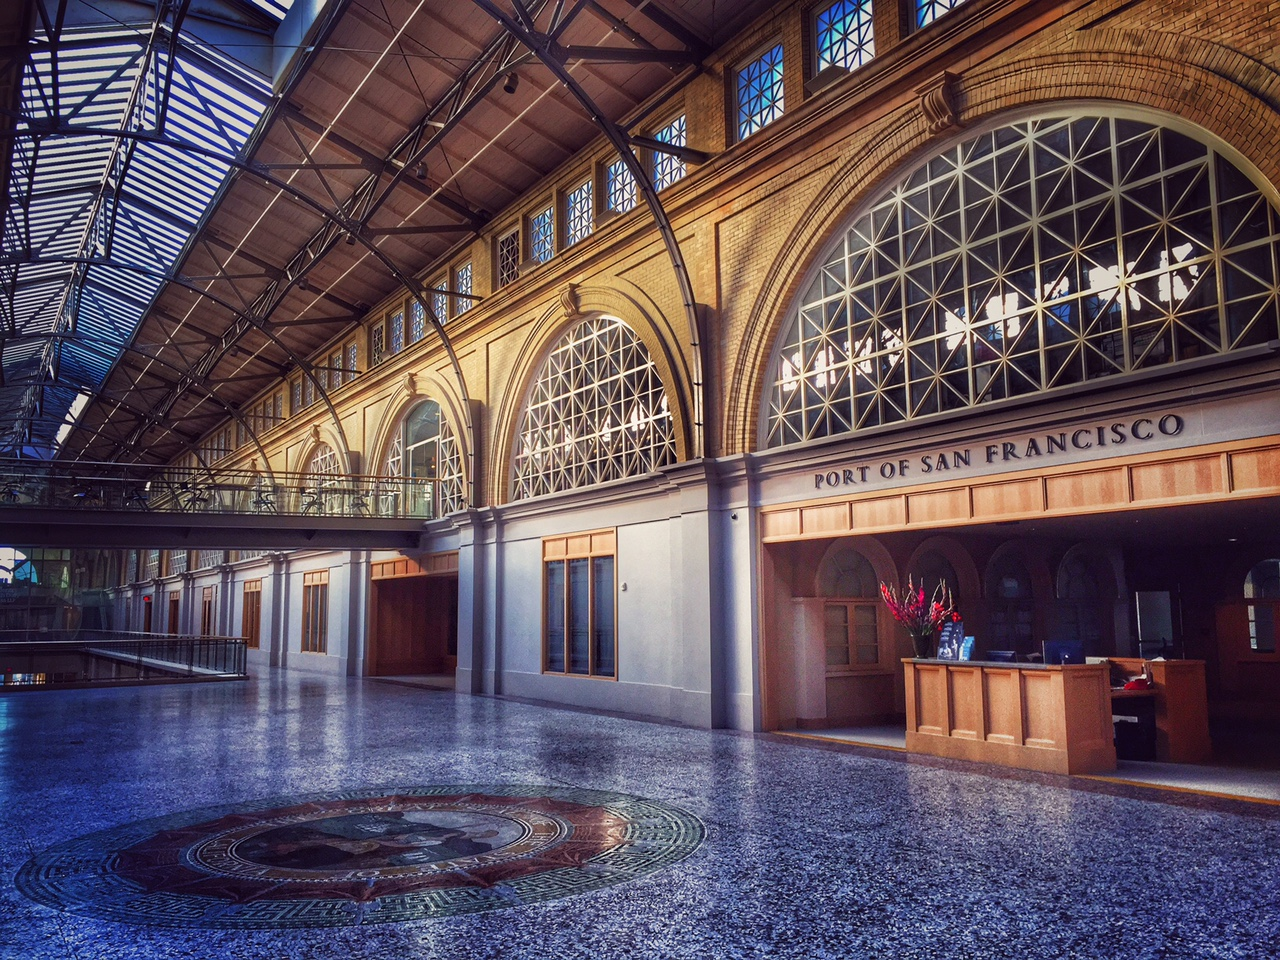 this is the second floor of the ferry building, which is fun to wander around, although it's not really a public place.